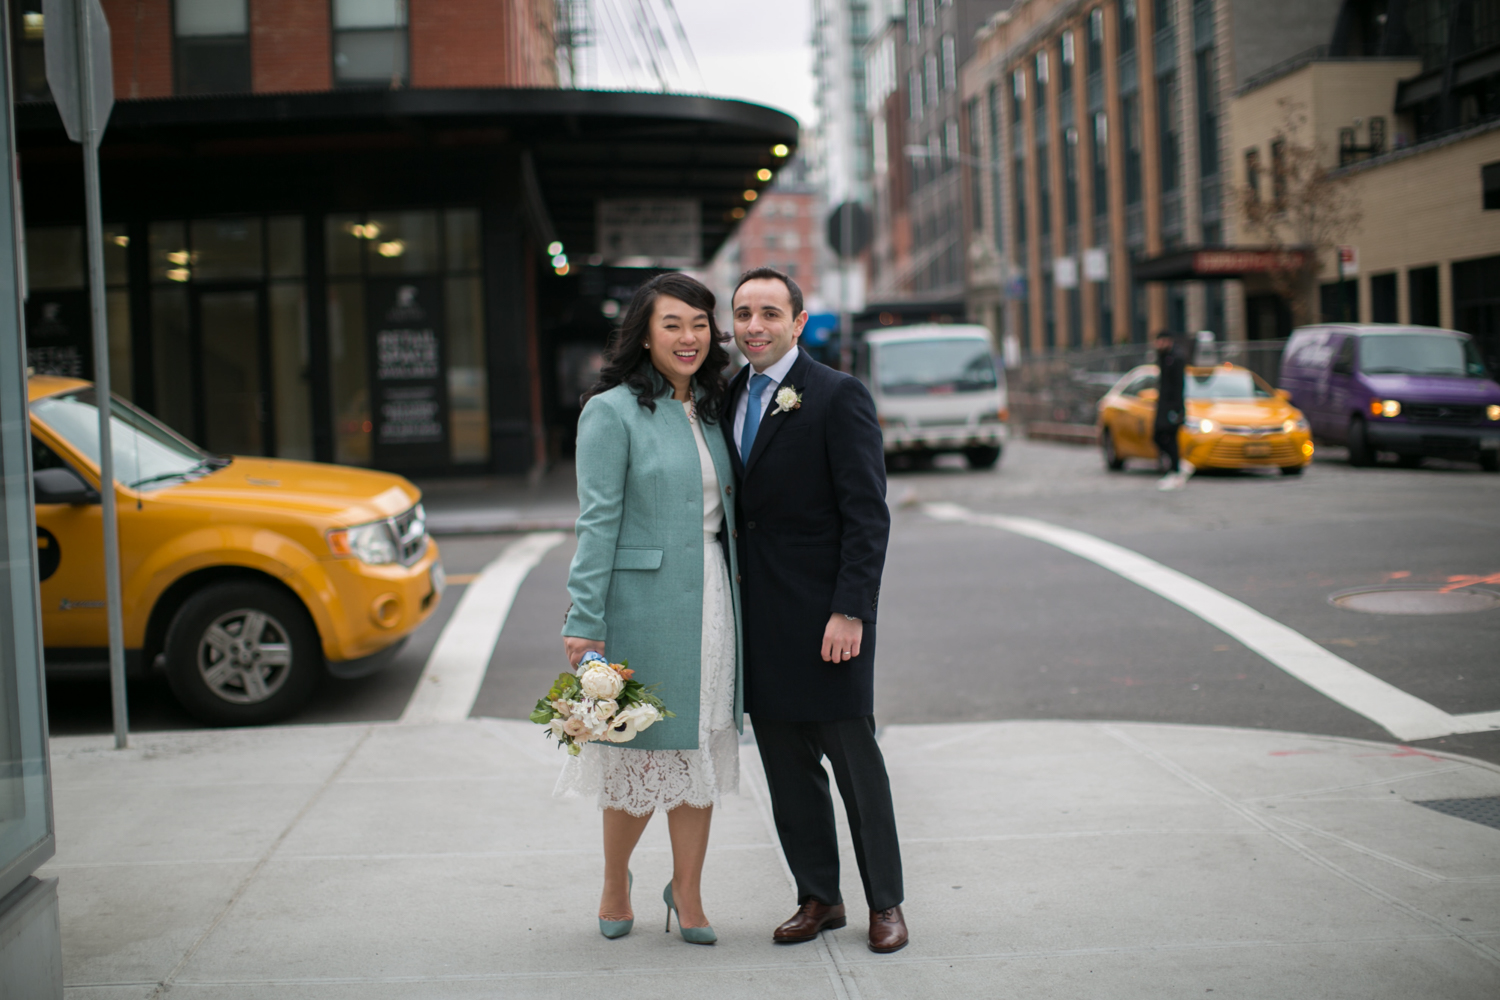 photograph of newlyweds enjoying a walk in NYC